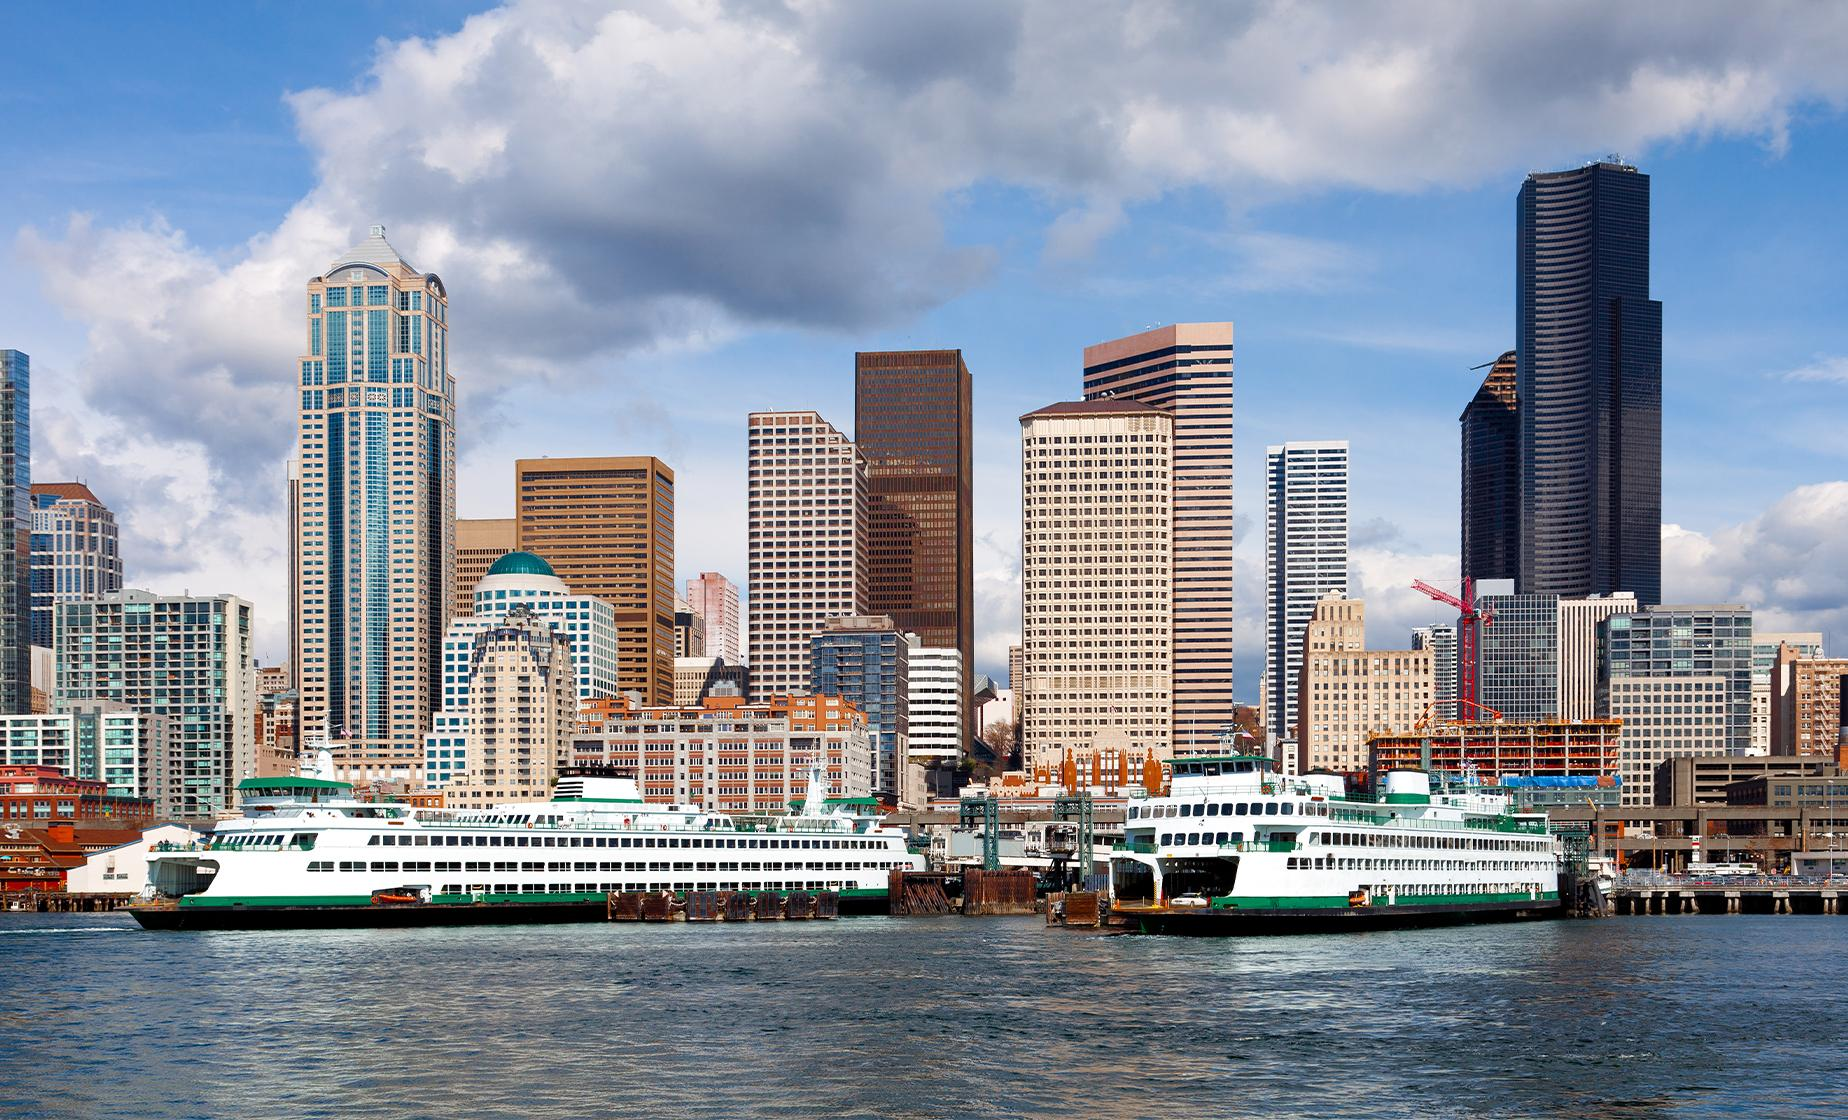 High-Speed Passenger Ferry Service From Seattle to Victoria, British Columbia (High Season)